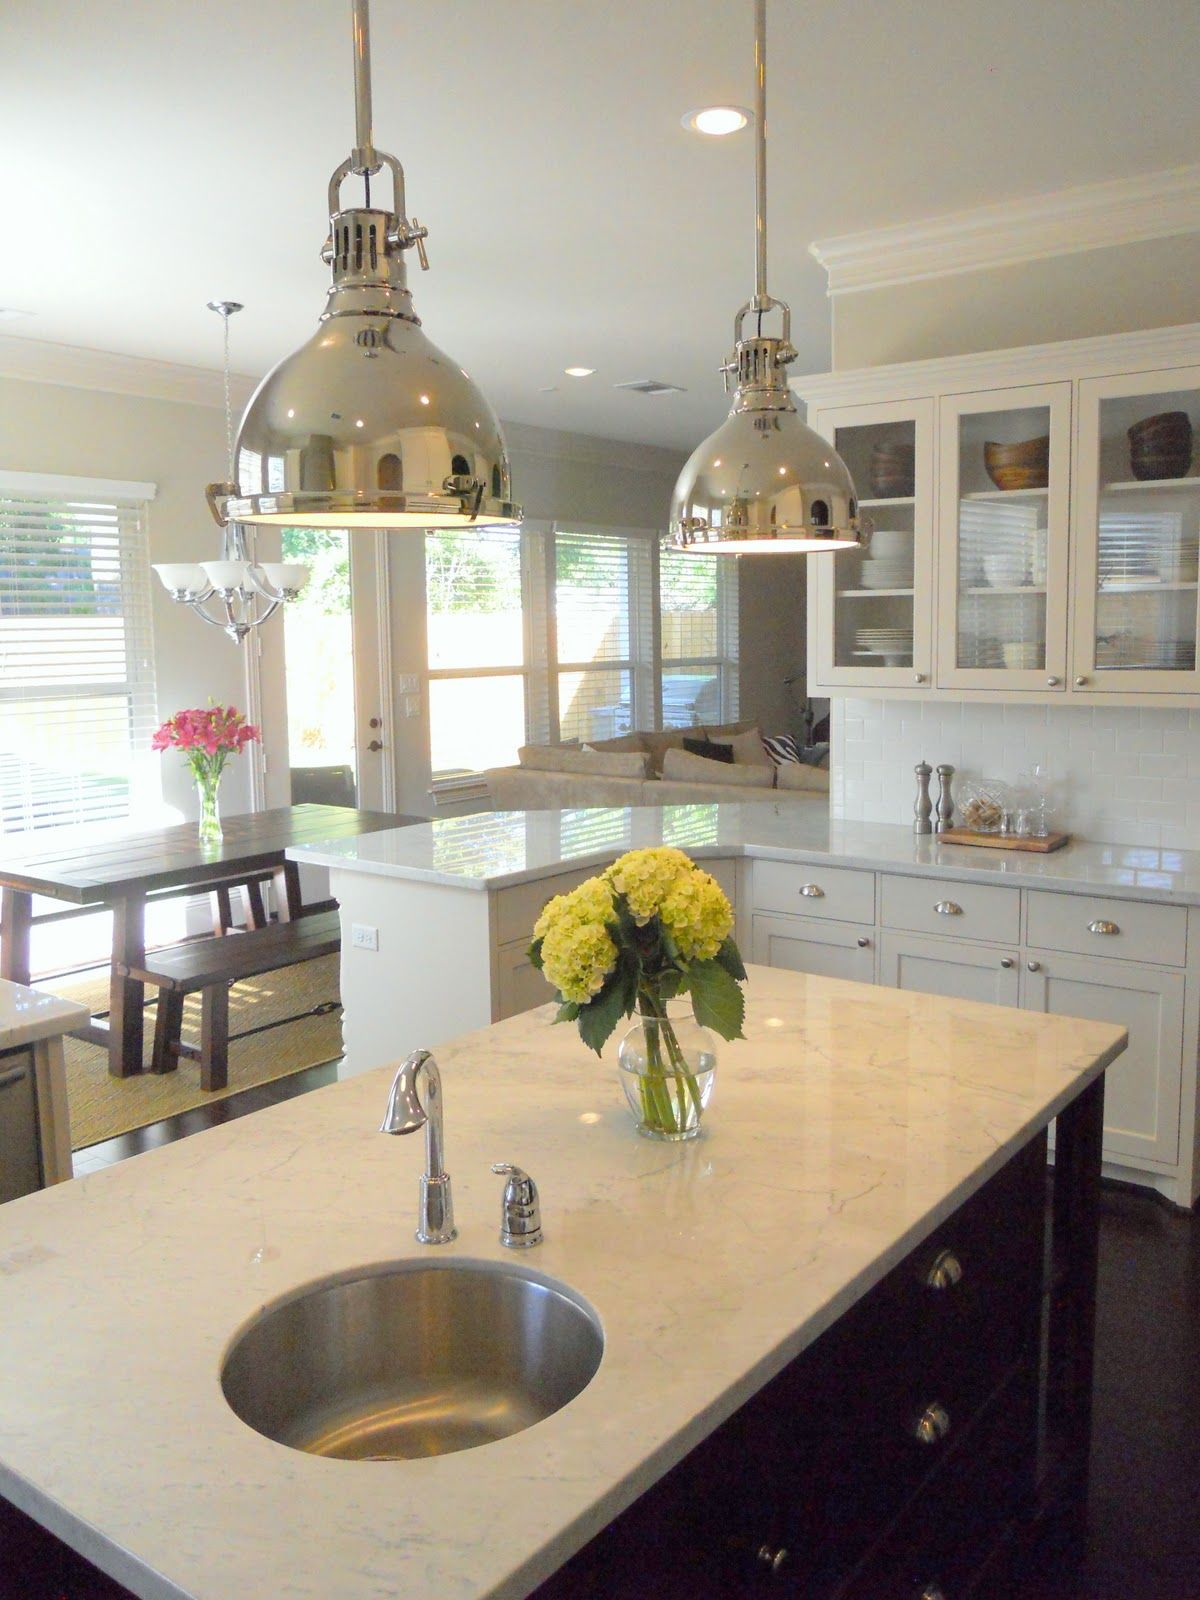 Industrial kitchen designs applied with fashionable decor ...